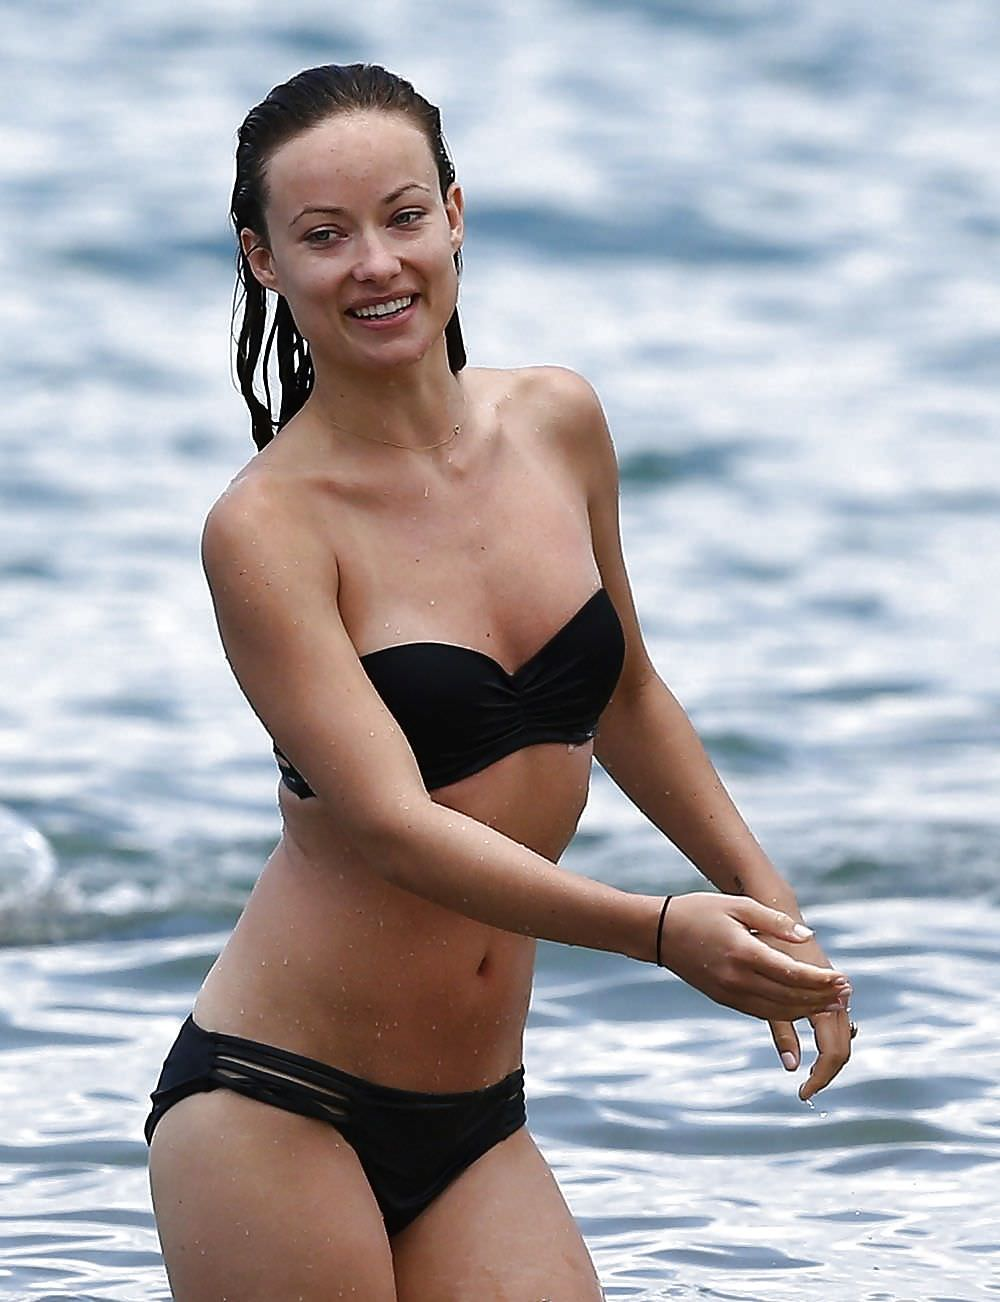 Olivia wilde sexy girl in the beach #4